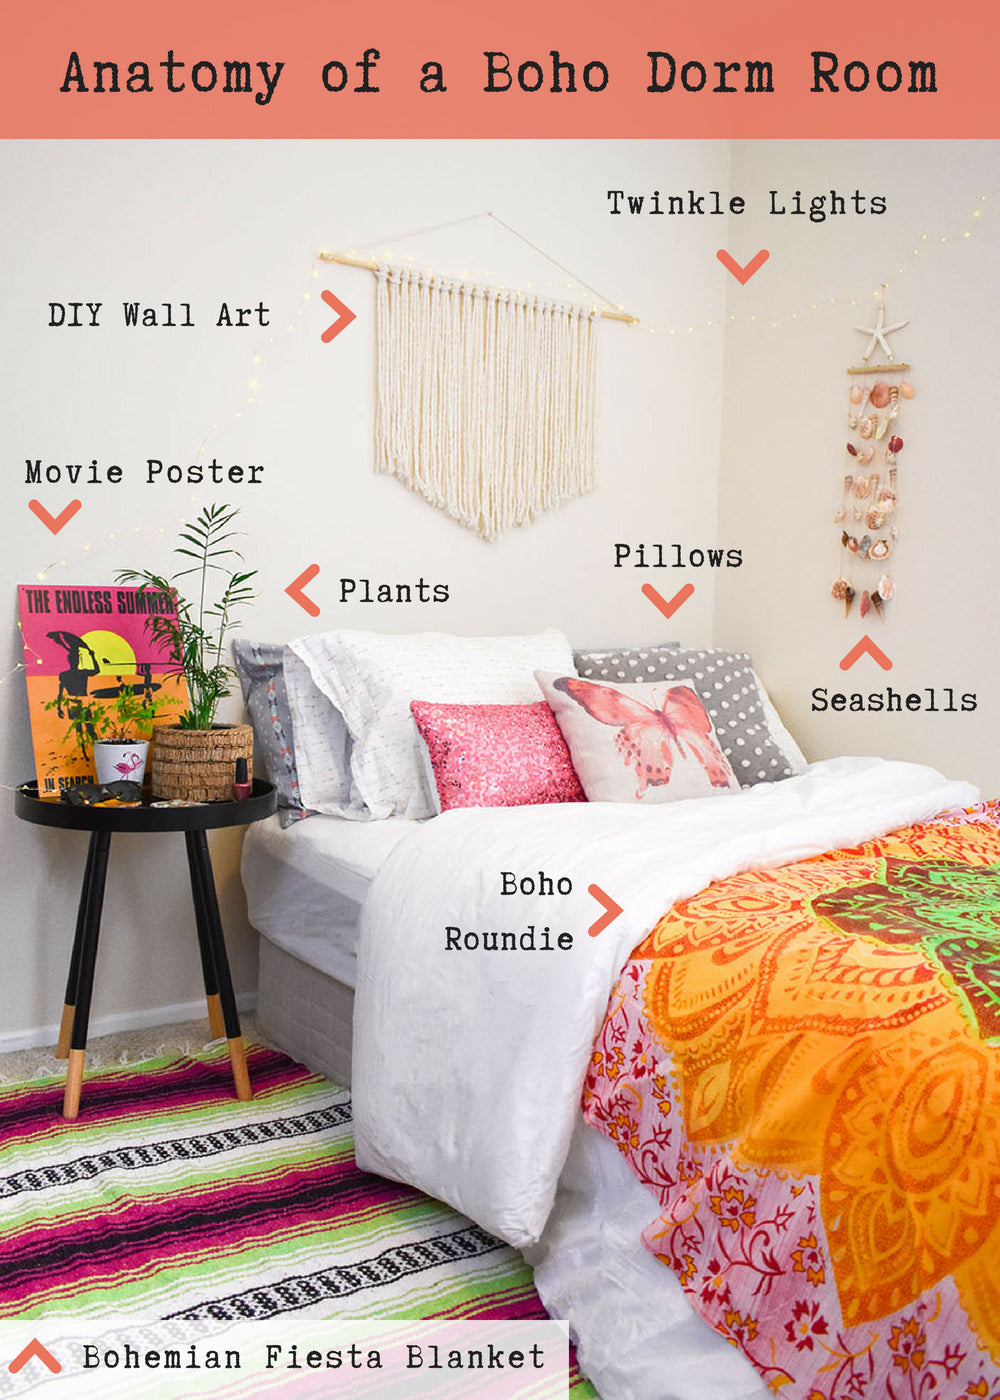 Breaking down the elements of the perfect boho bedroom. This simple, yet colorful dorm room look was created for the boho girl who loves pink, the beach, and a casual cool vibe. It is not over top and has just the right amount of embellishment to let her personality shine.